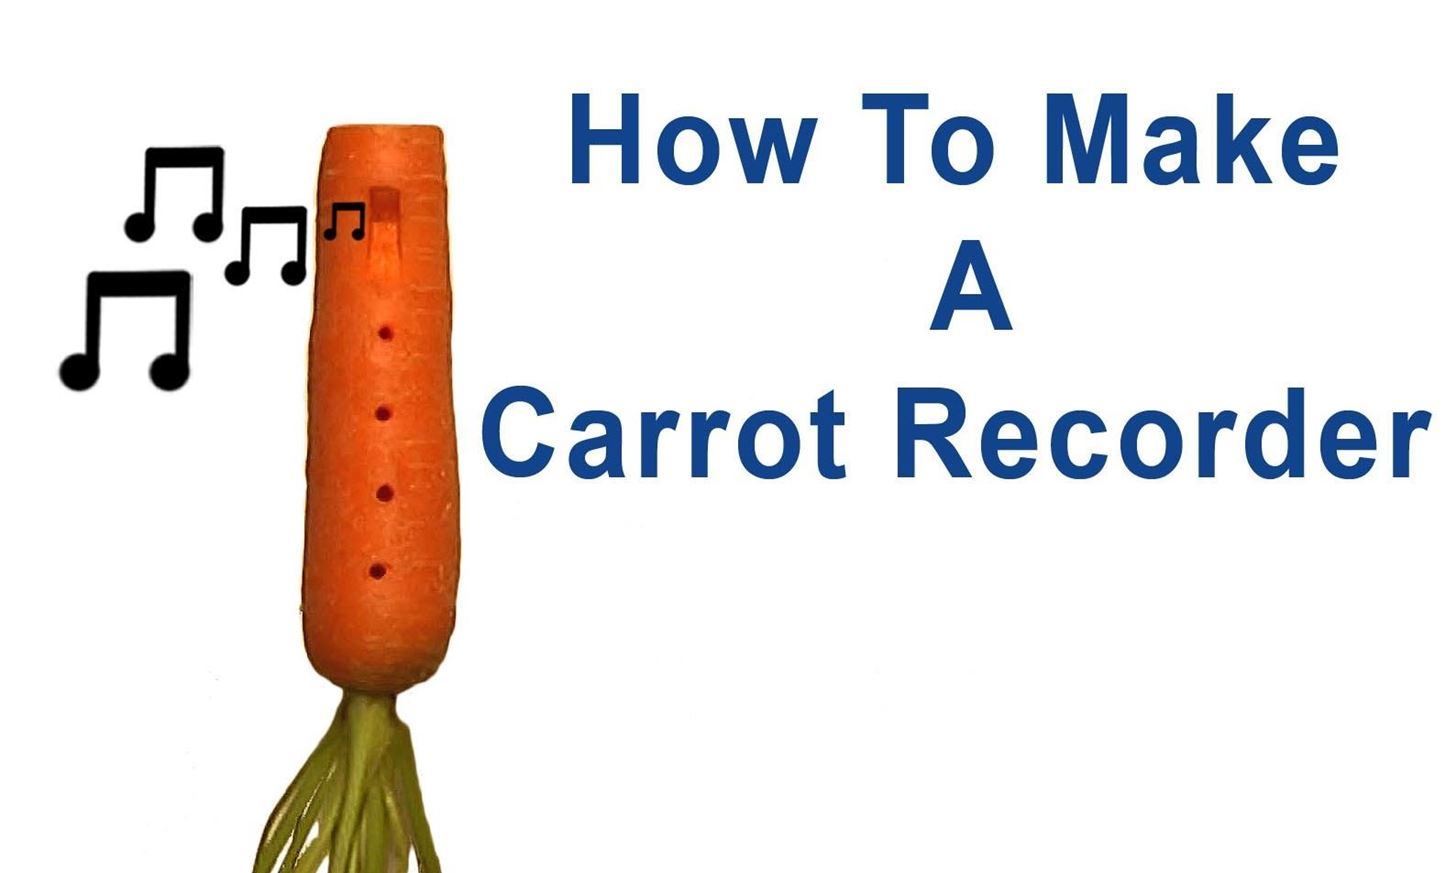 How to Make a Carrot Recorder